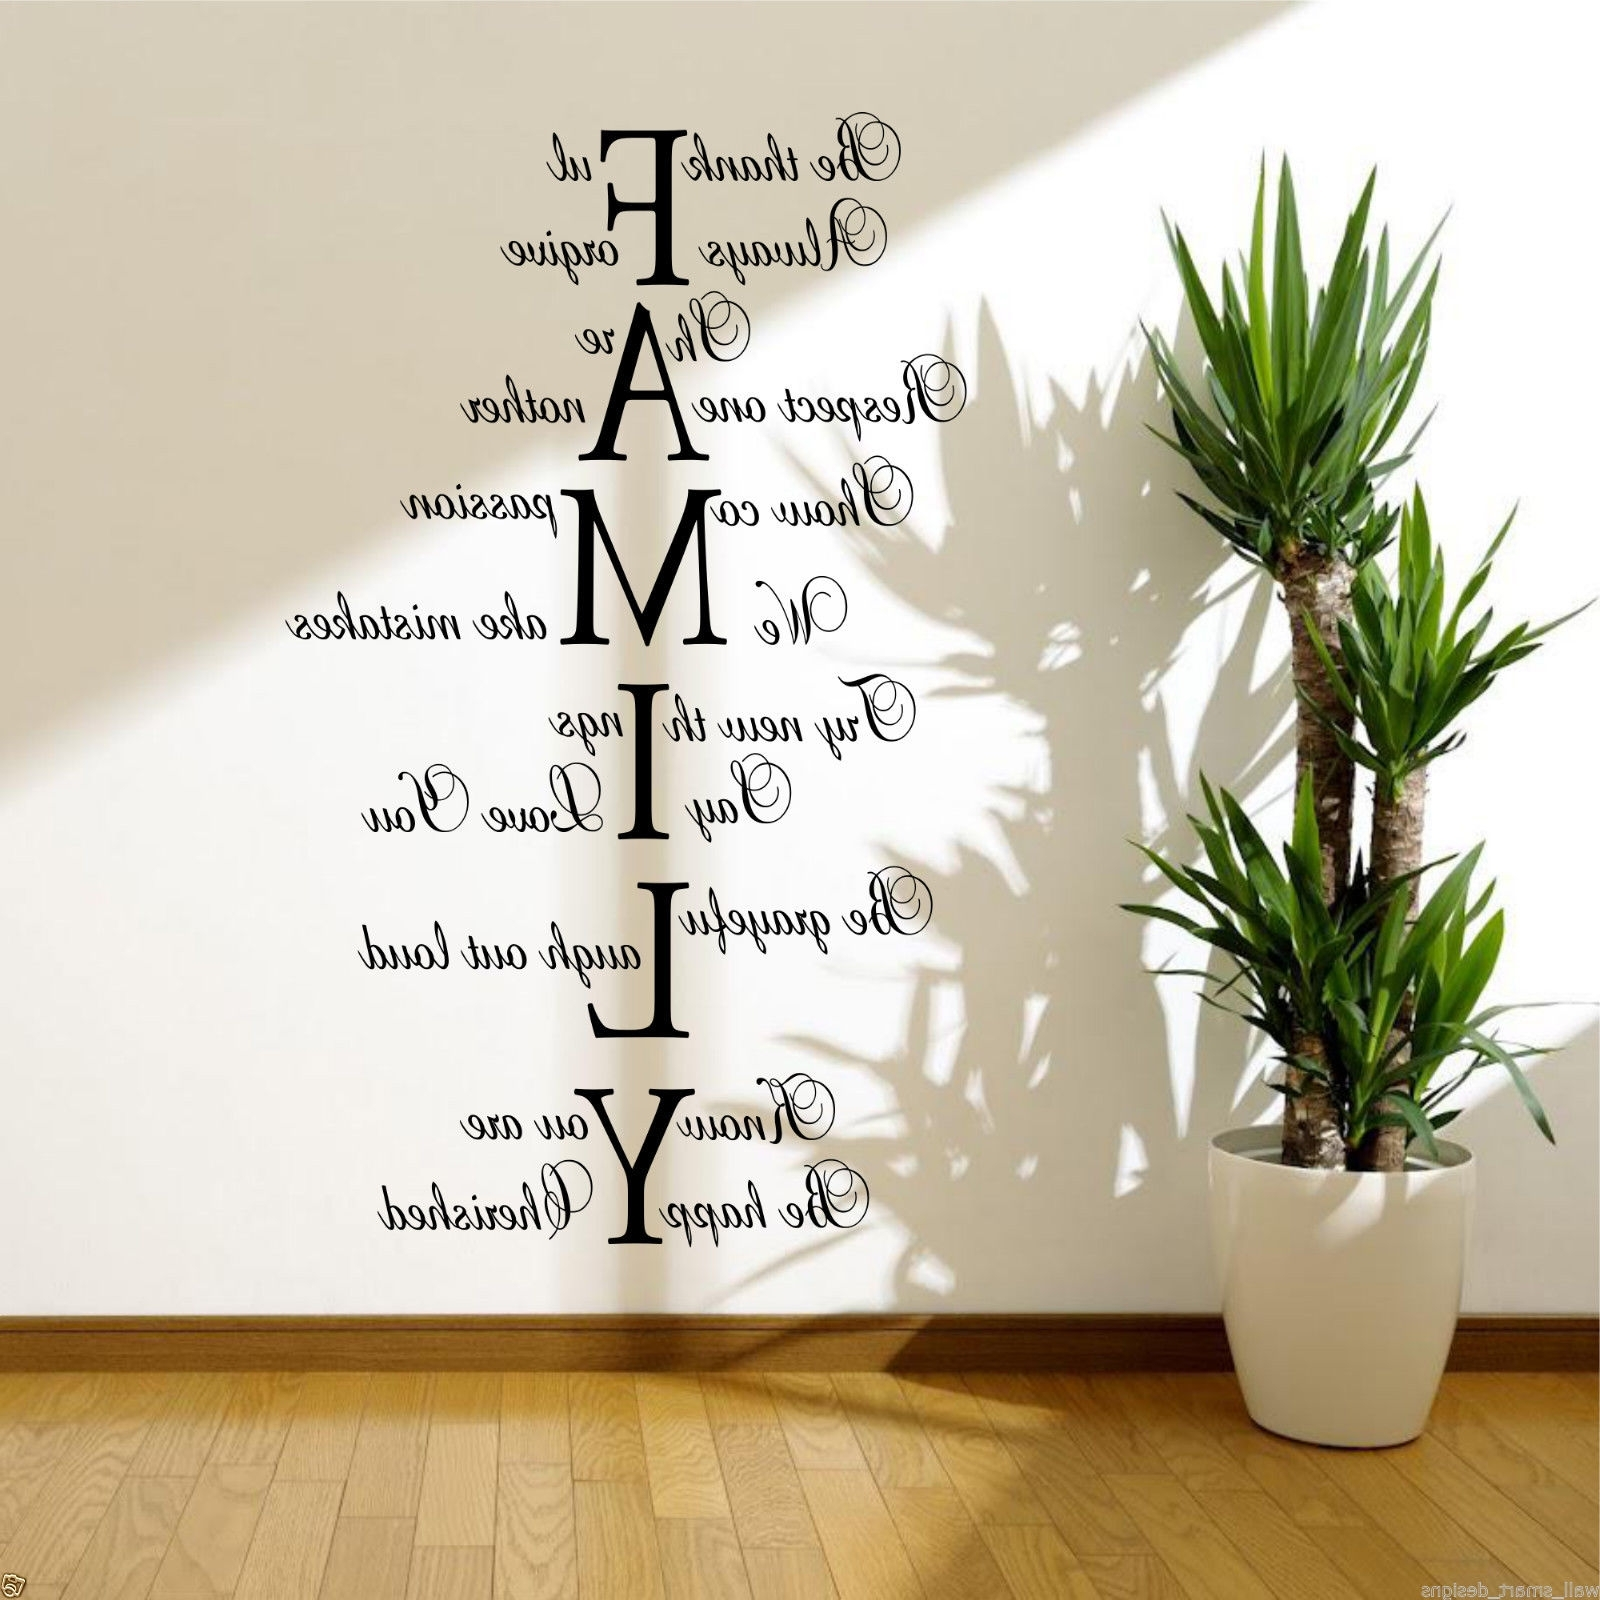 Wall Art Quotes With Latest Family Love Life Wall Art Sticker Quote Room Decal Mural Transfer (View 13 of 15)